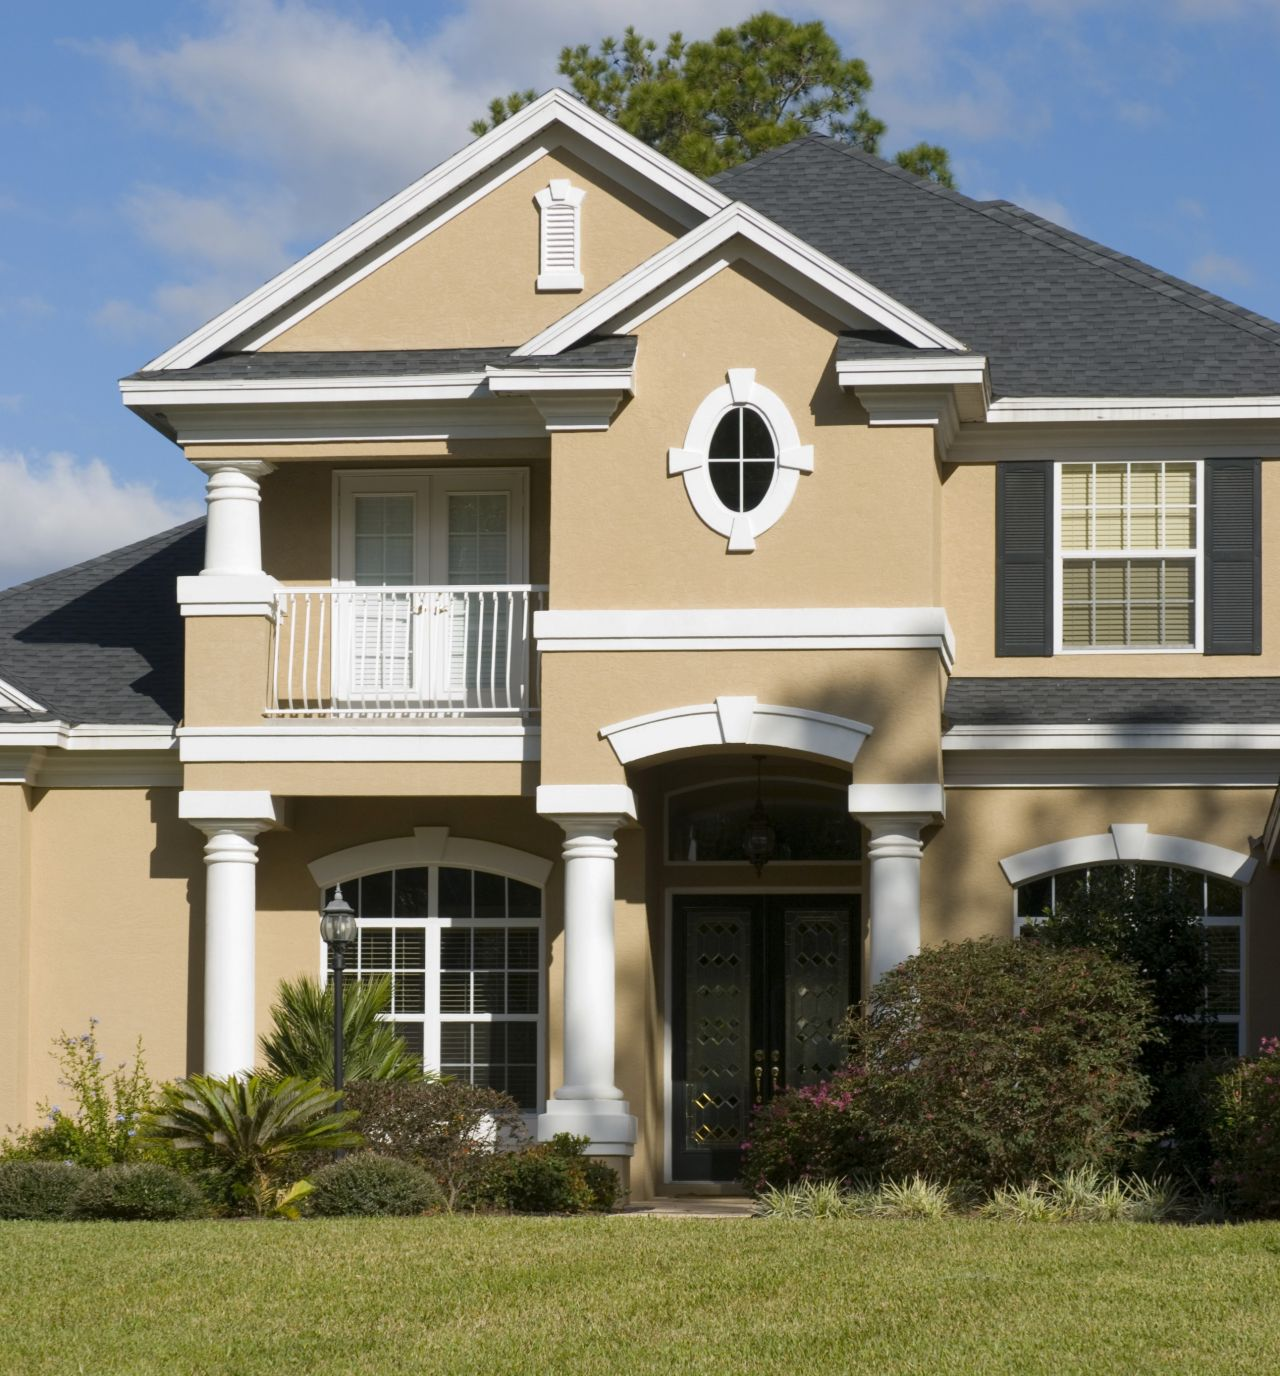 Exterior paint schemes and consider your surroundings for House paint color exterior